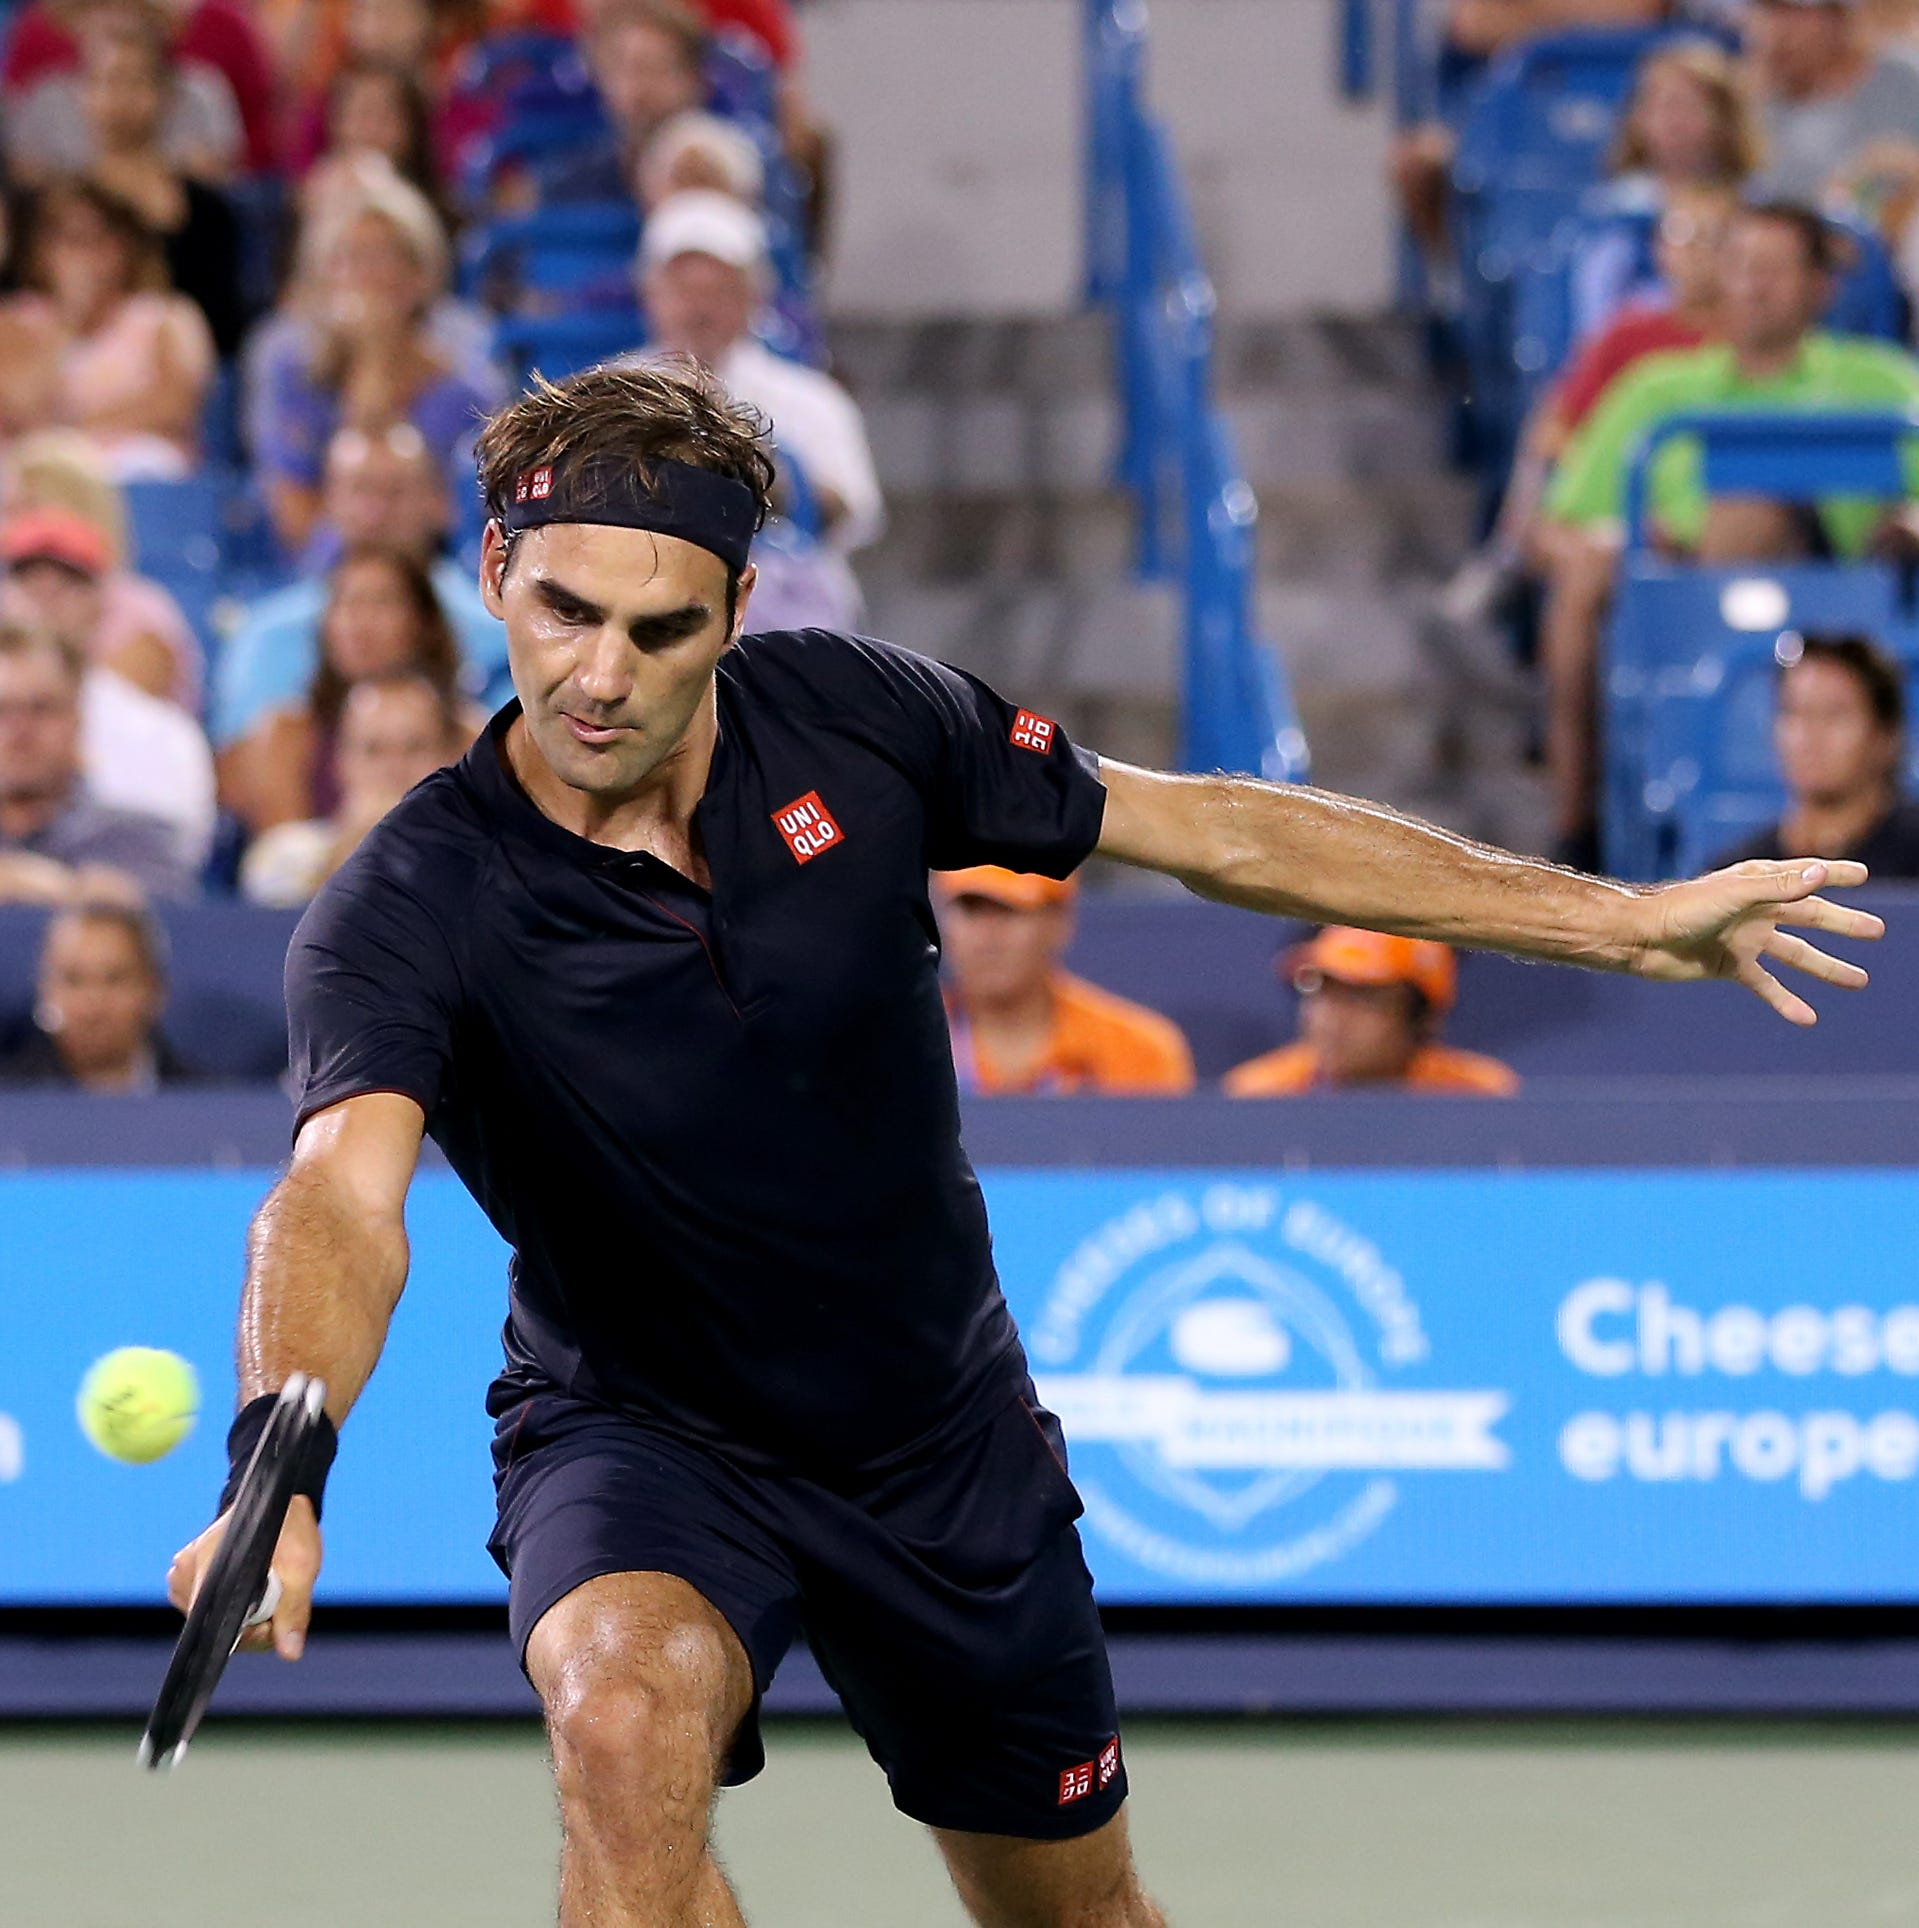 Roger Federer advances to Western & Southern final after David Goffin retires from semifinals